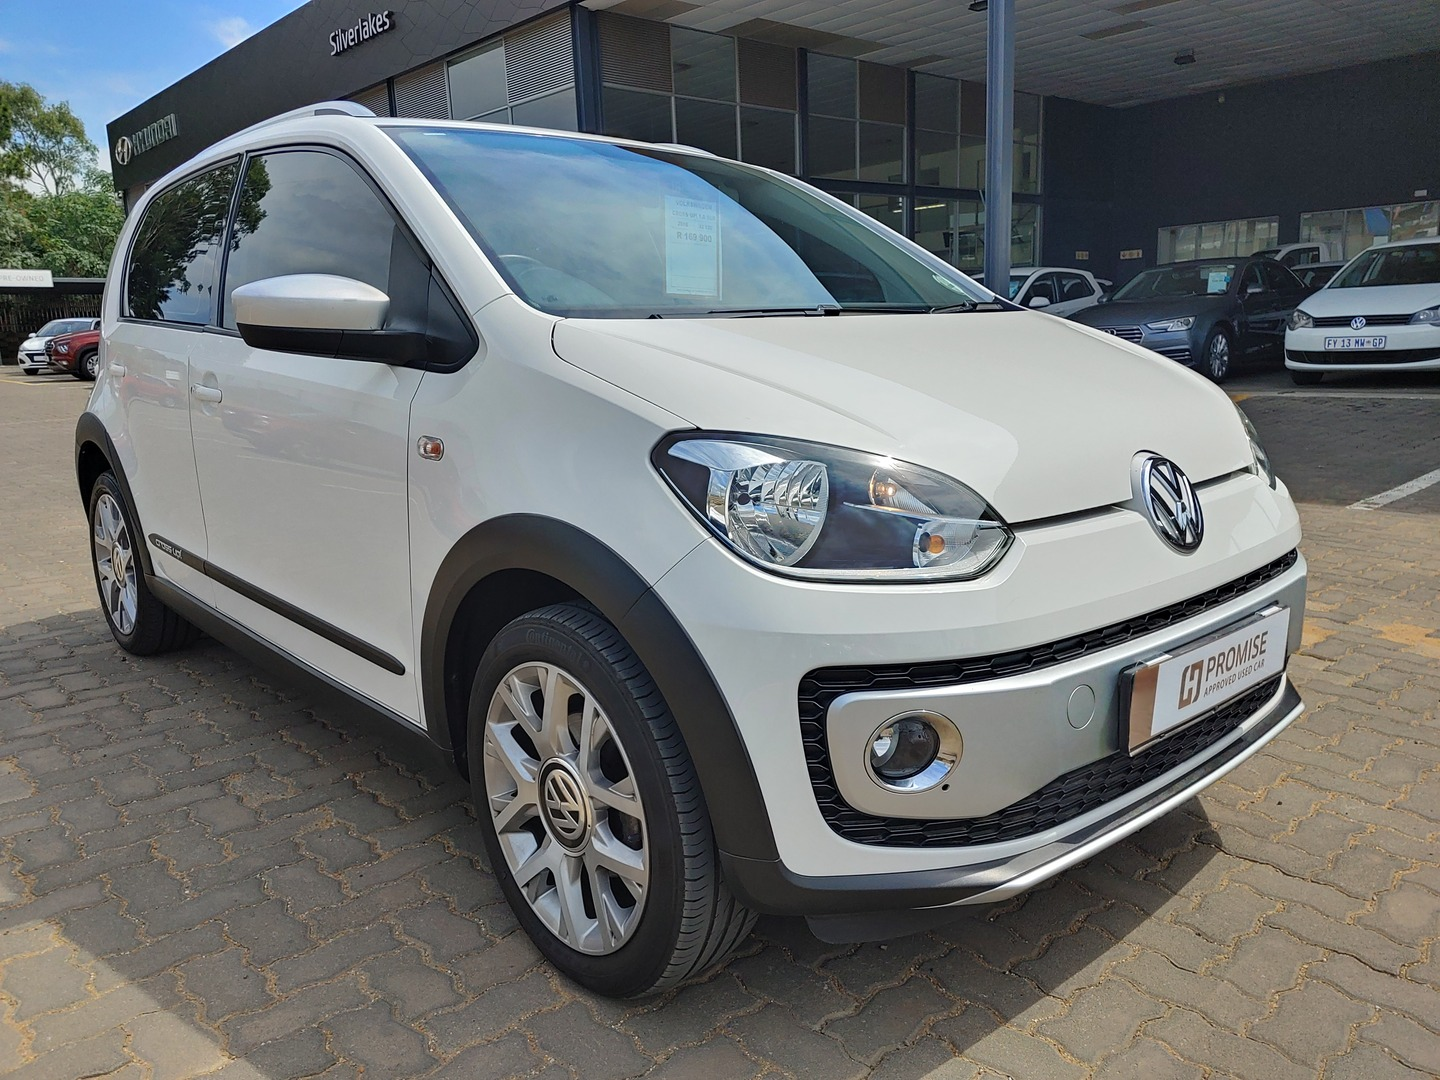 VOLKSWAGEN UP! 1.0 5DR Silver Lakes 0333905